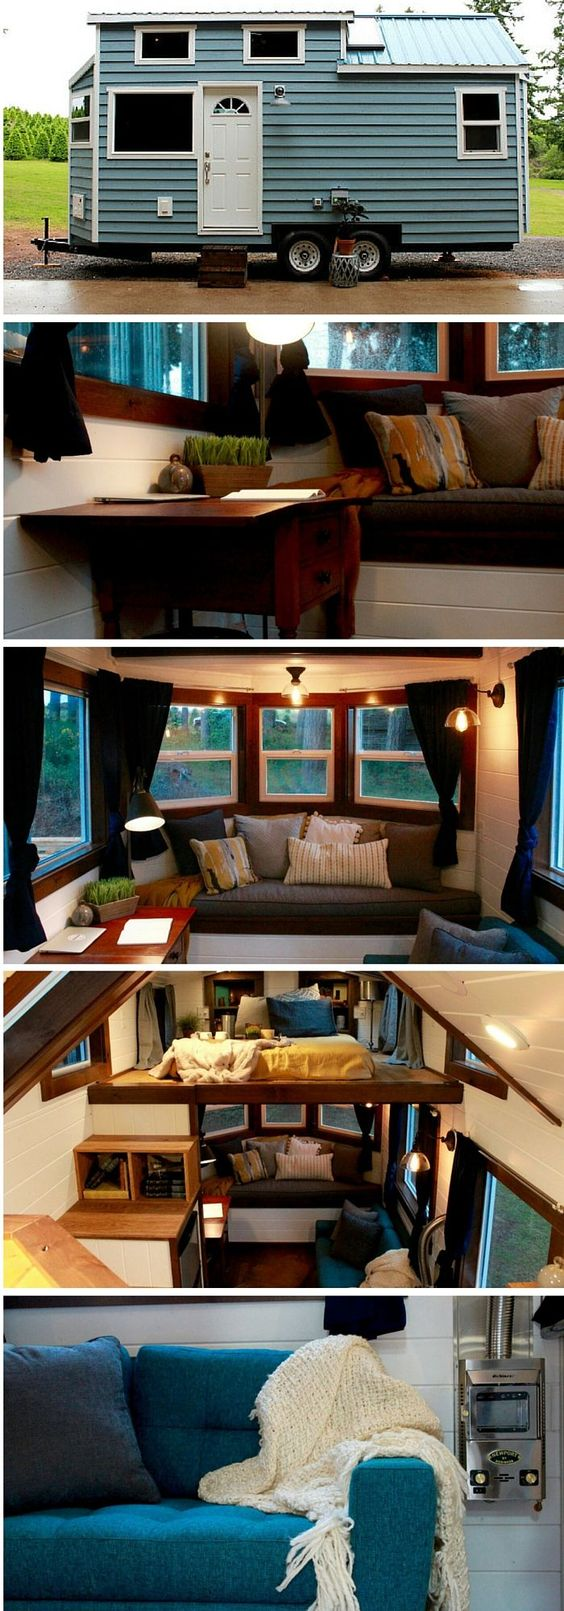 #tumbleweed #tinyhouses #tinyhome #tinyhouseplans The Sapphire tiny house on wheels from Tiny Heirloom. .